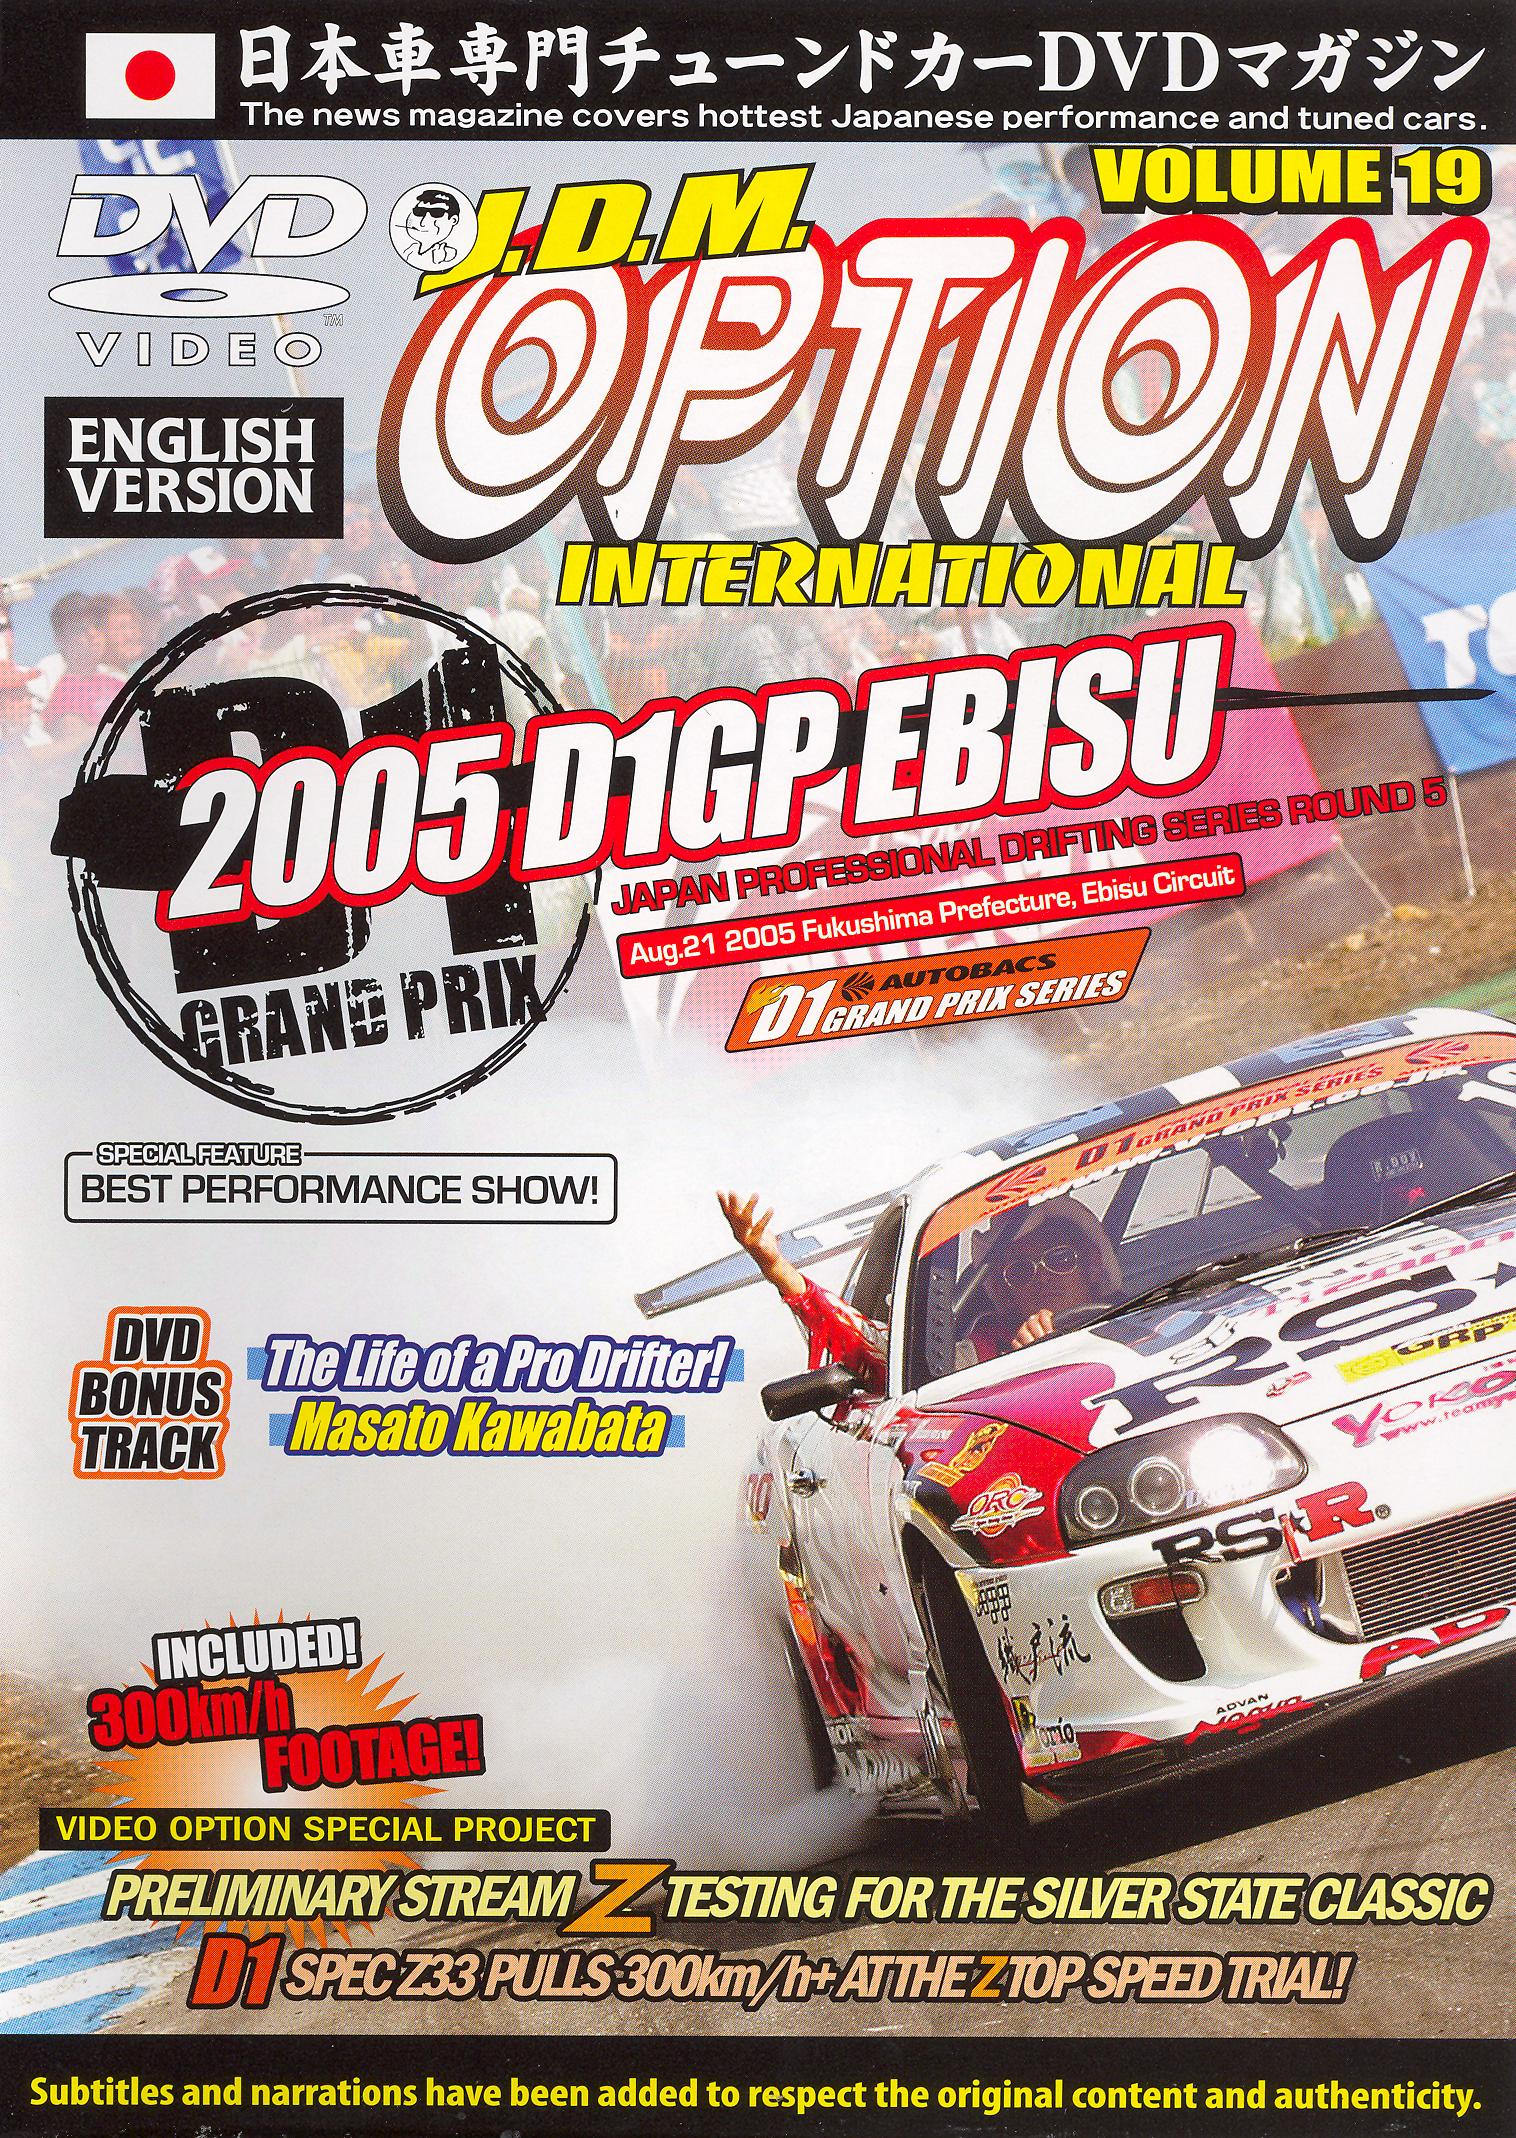 Top Speed Challenge of Fairlady Z's